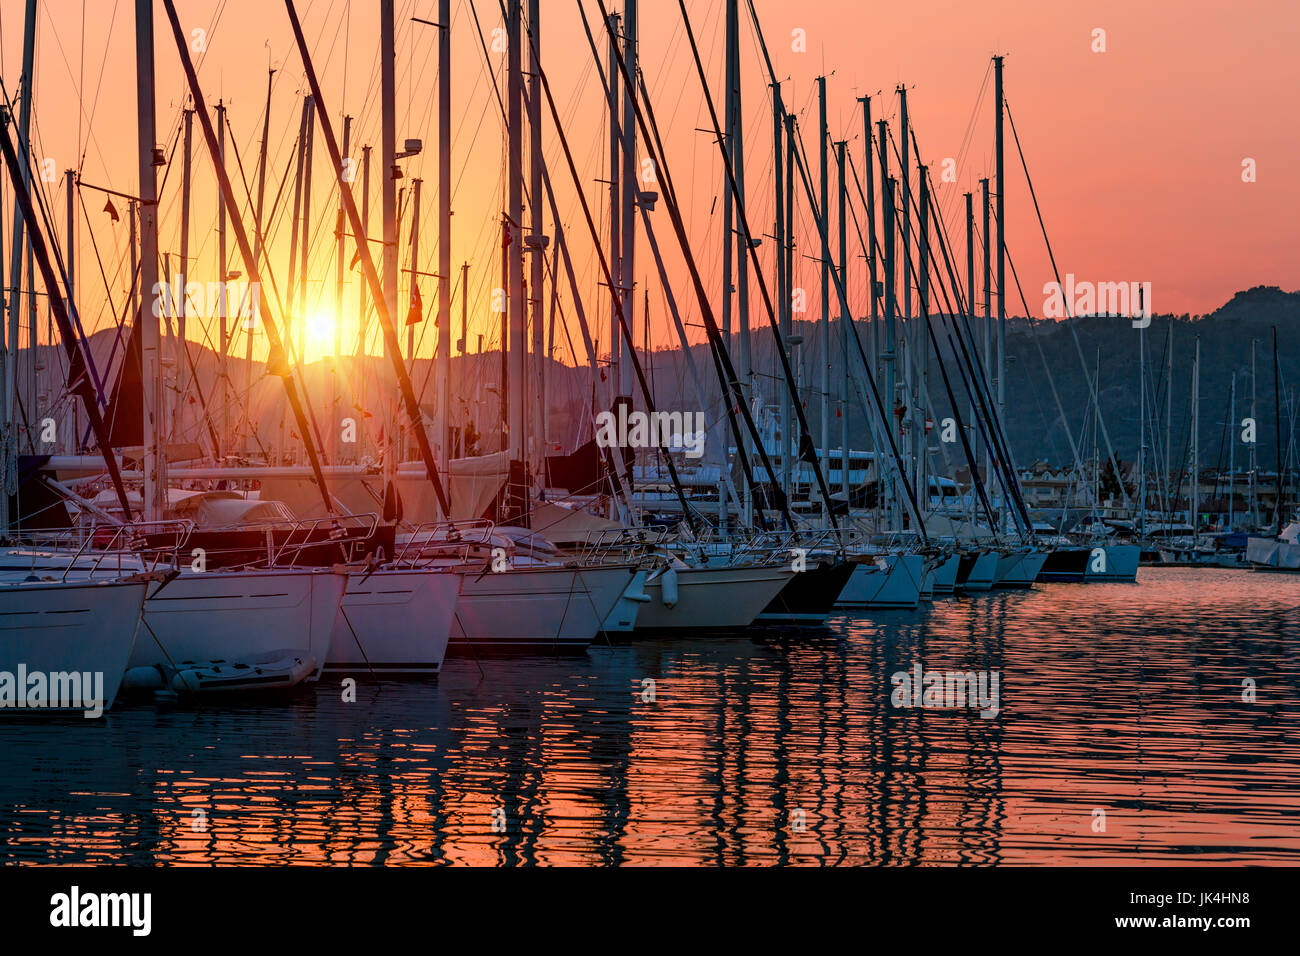 Sailboats in the harbor in mild sunset light, beautiful view on the luxury water transport in the dock, summer vacation - Stock Image